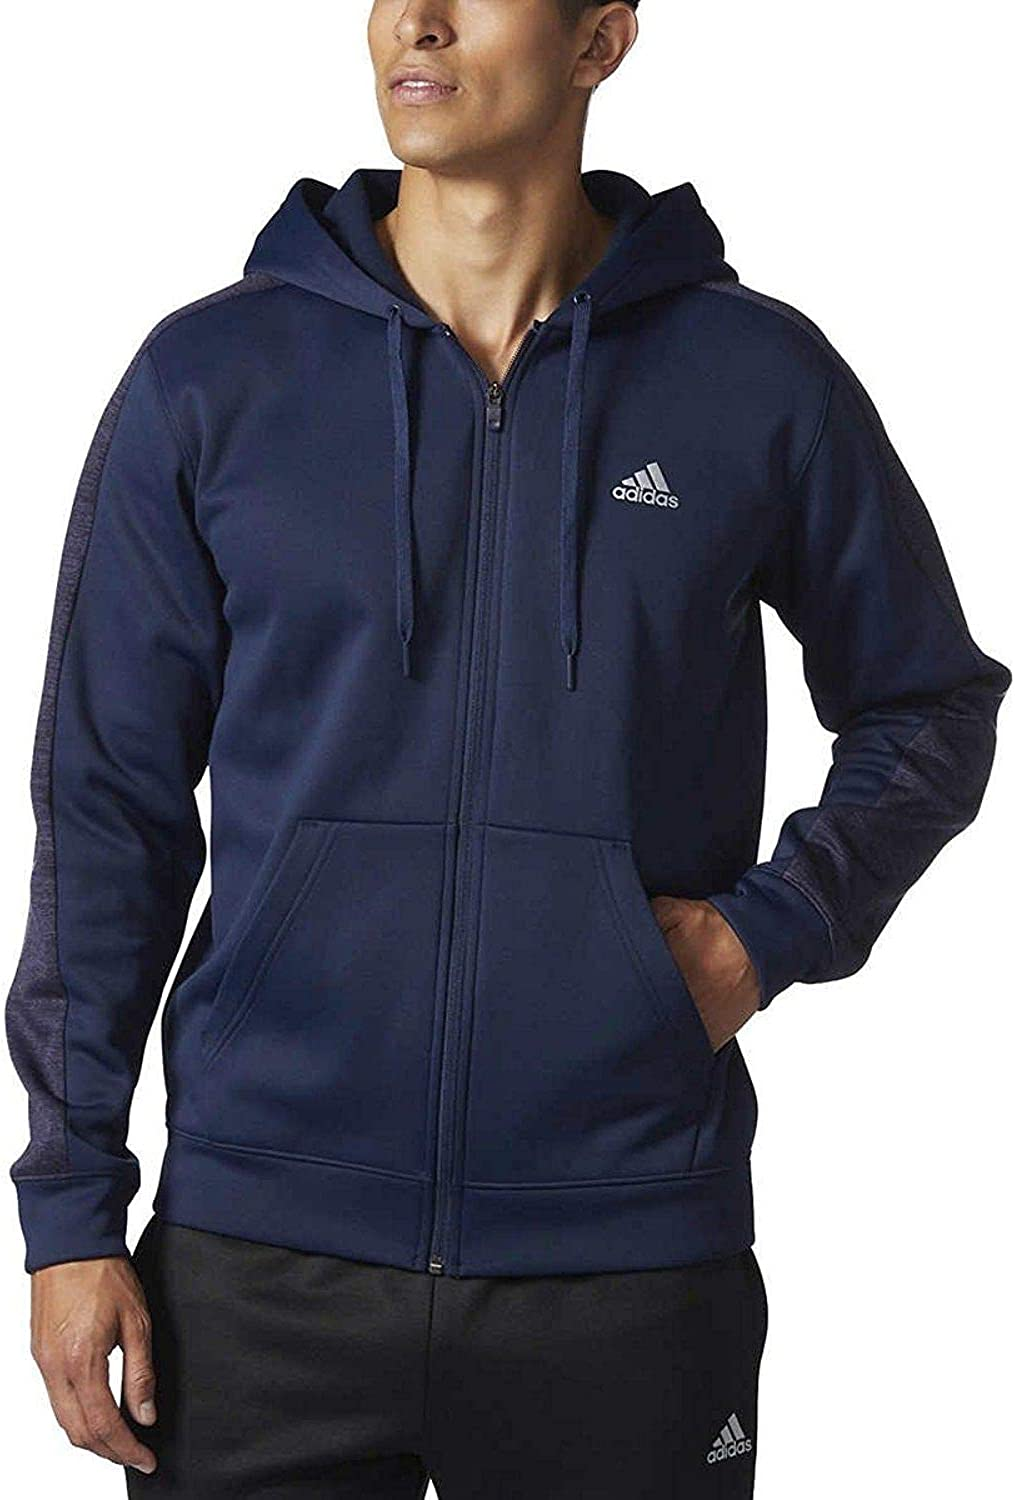 adidas fleece full zip